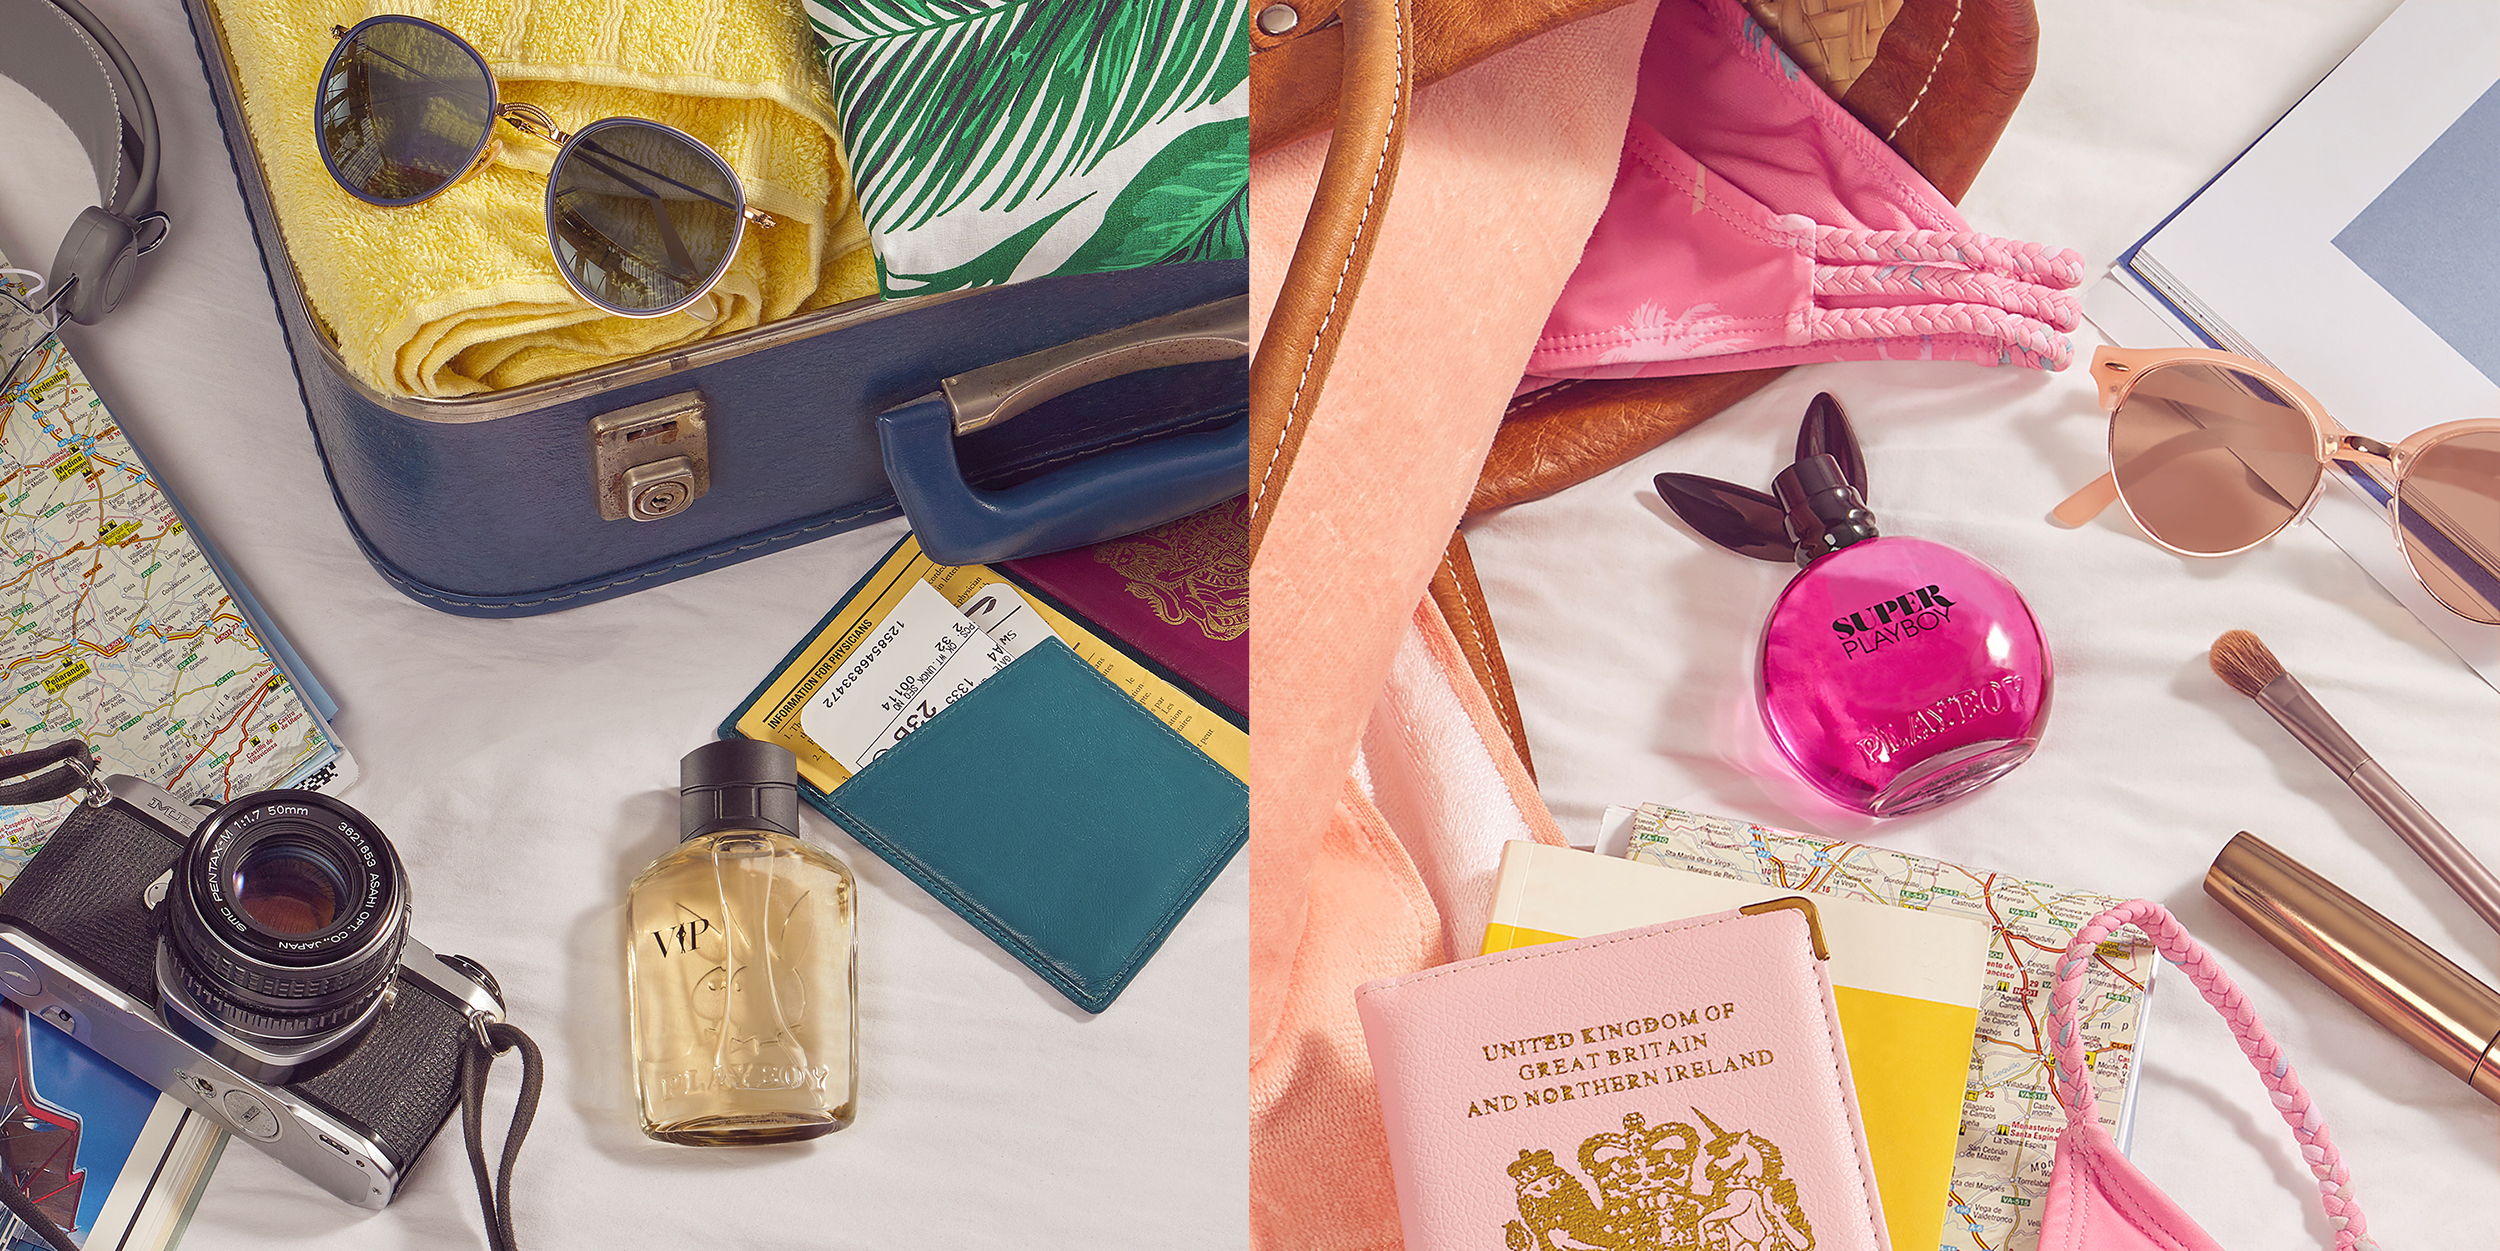 Still life  travel perfumes and cosmetics. Two creative product photography images sit next to each other. Styled with travel accessories for both him and her and shot in london location by  still life product photographer chris howlett